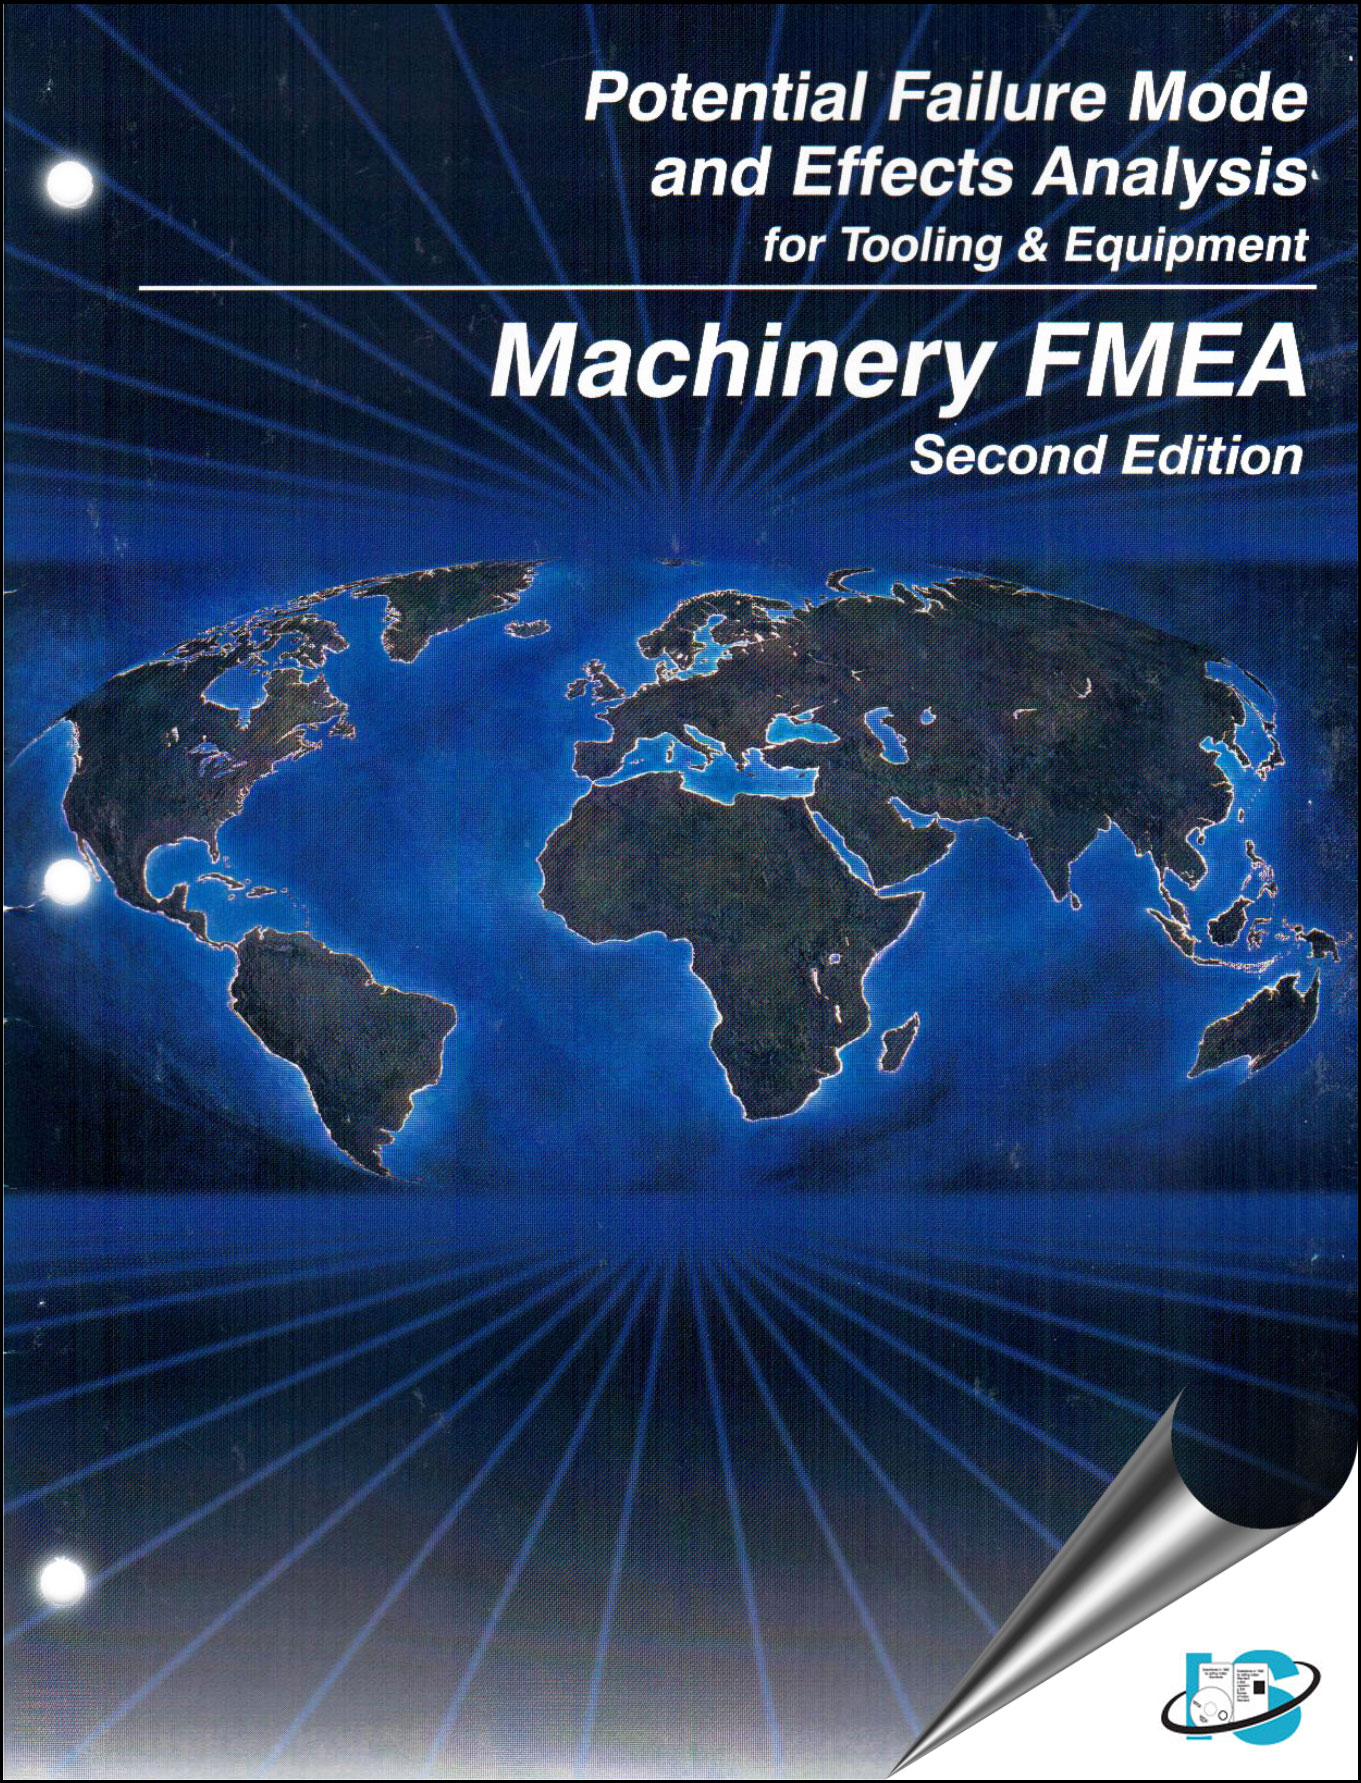 Ford Fmea Handbook Requirements